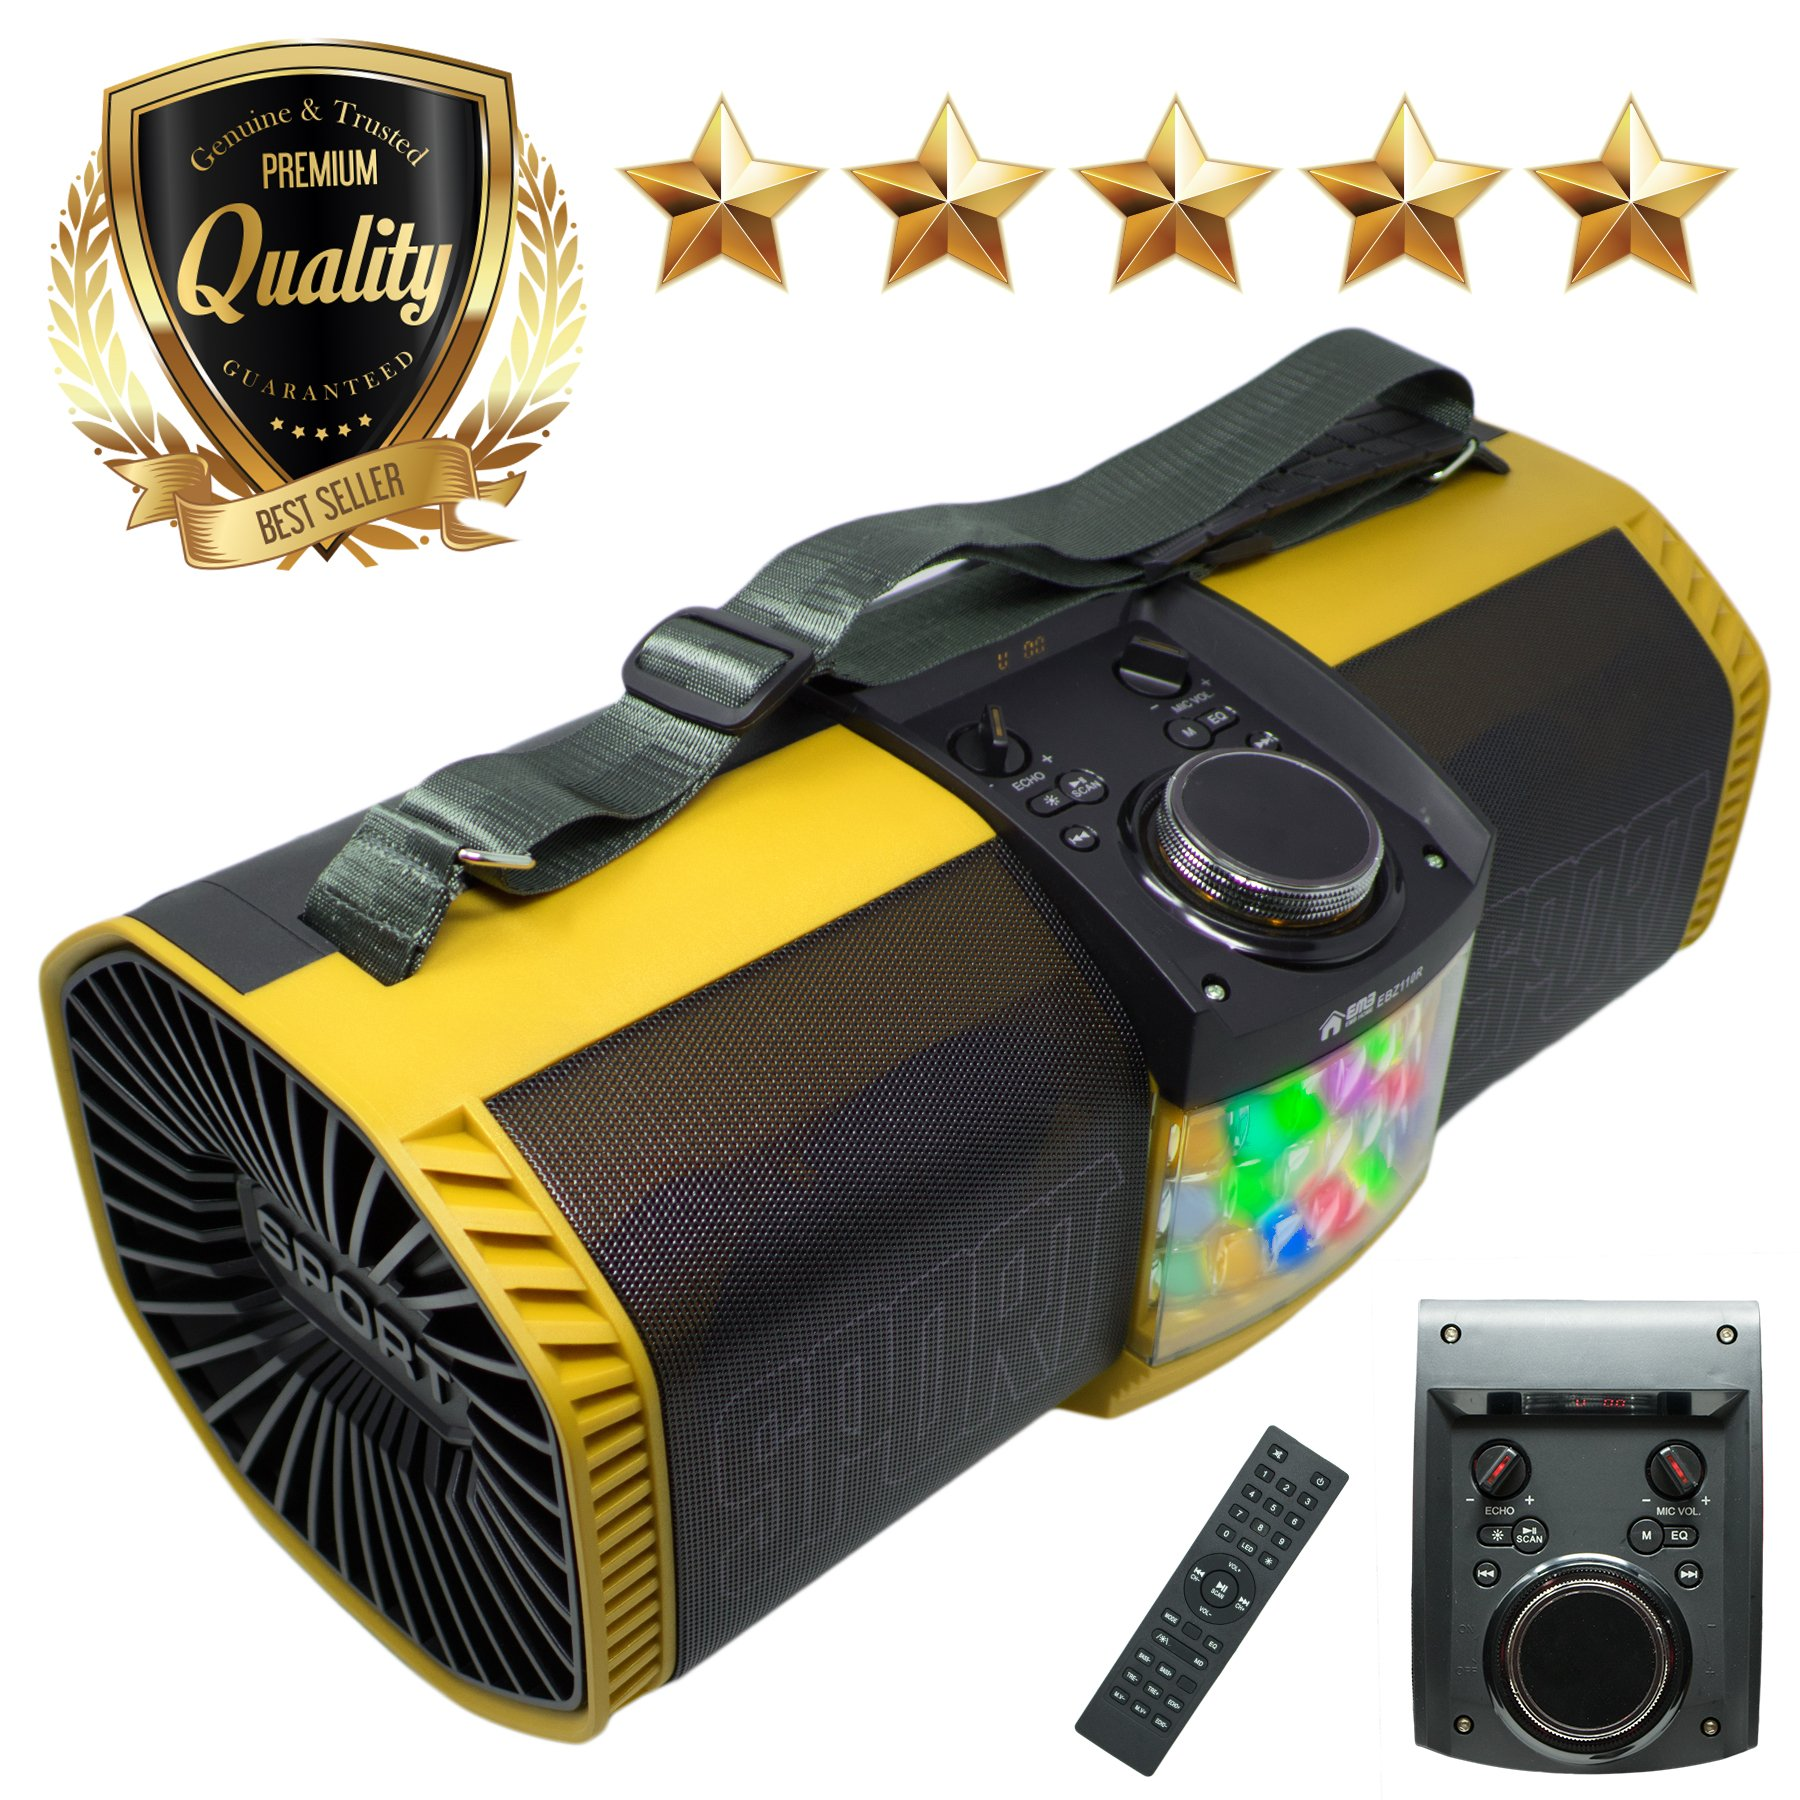 EMB Bluetooth Boombox Street Disco Stereo Speaker - 3600mAH Rechargeable Battery Portable Wireless 300 Watts Power FM Radio/MP3 Player w/Remote and Disco Lights (Yellow) by EMB Professional